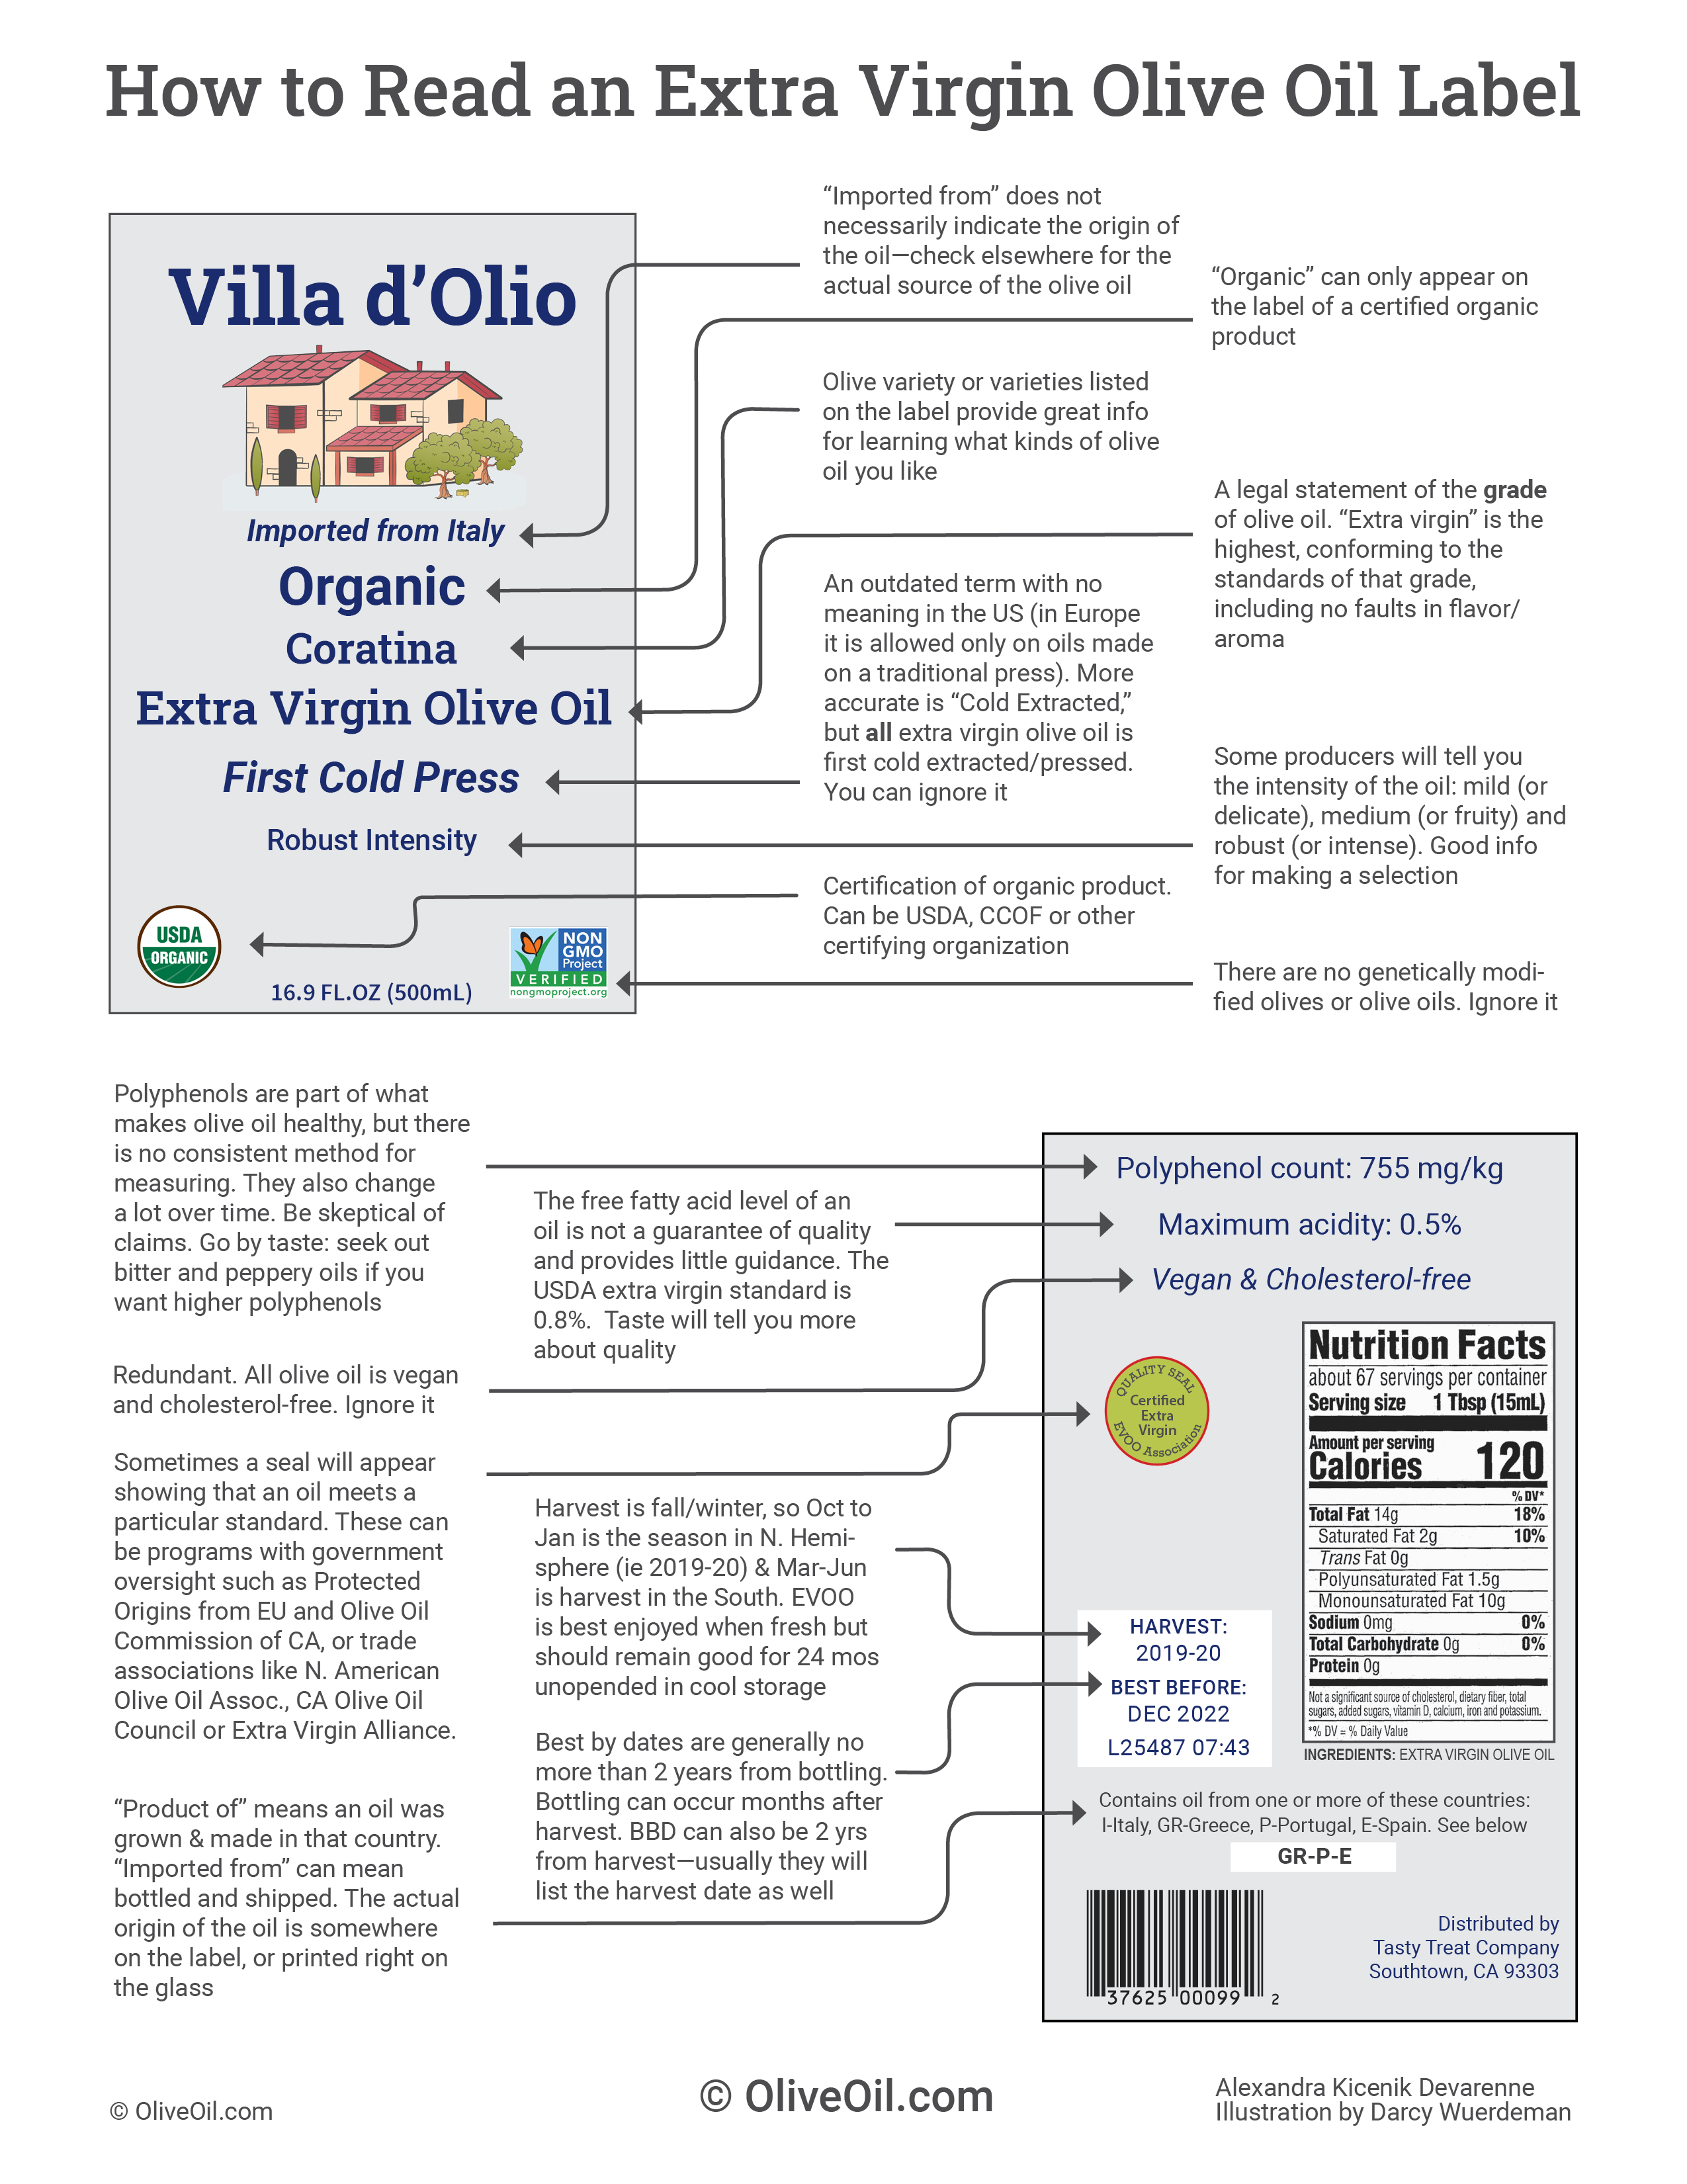 How to read an extra virgin olive oil label infographic